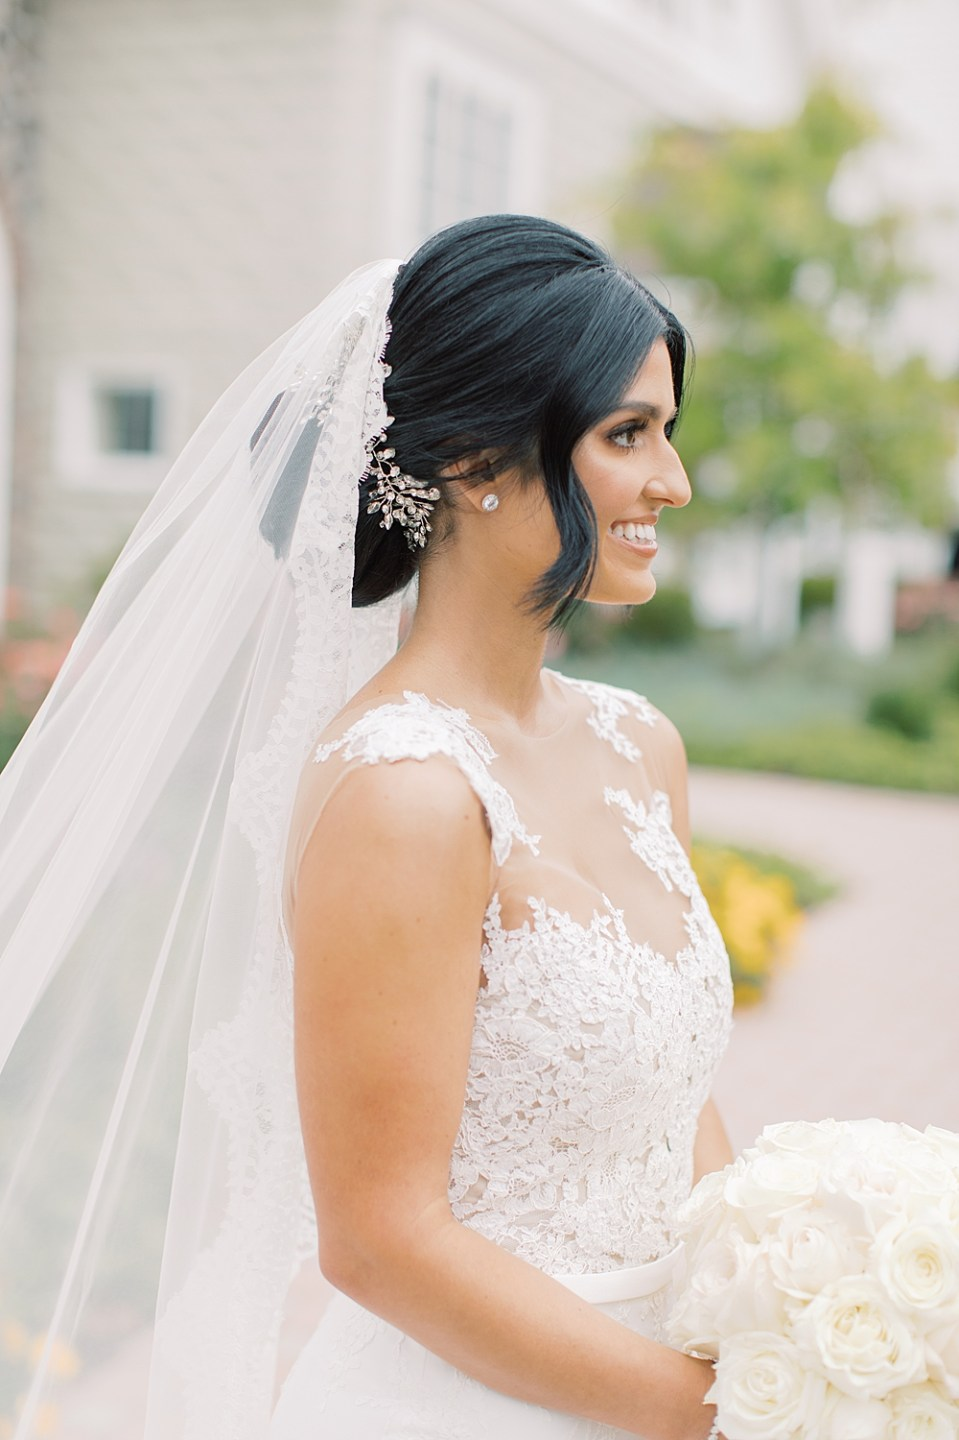 hair and makeup by alisha nycole & co | ryland inn wedding | sarah canning